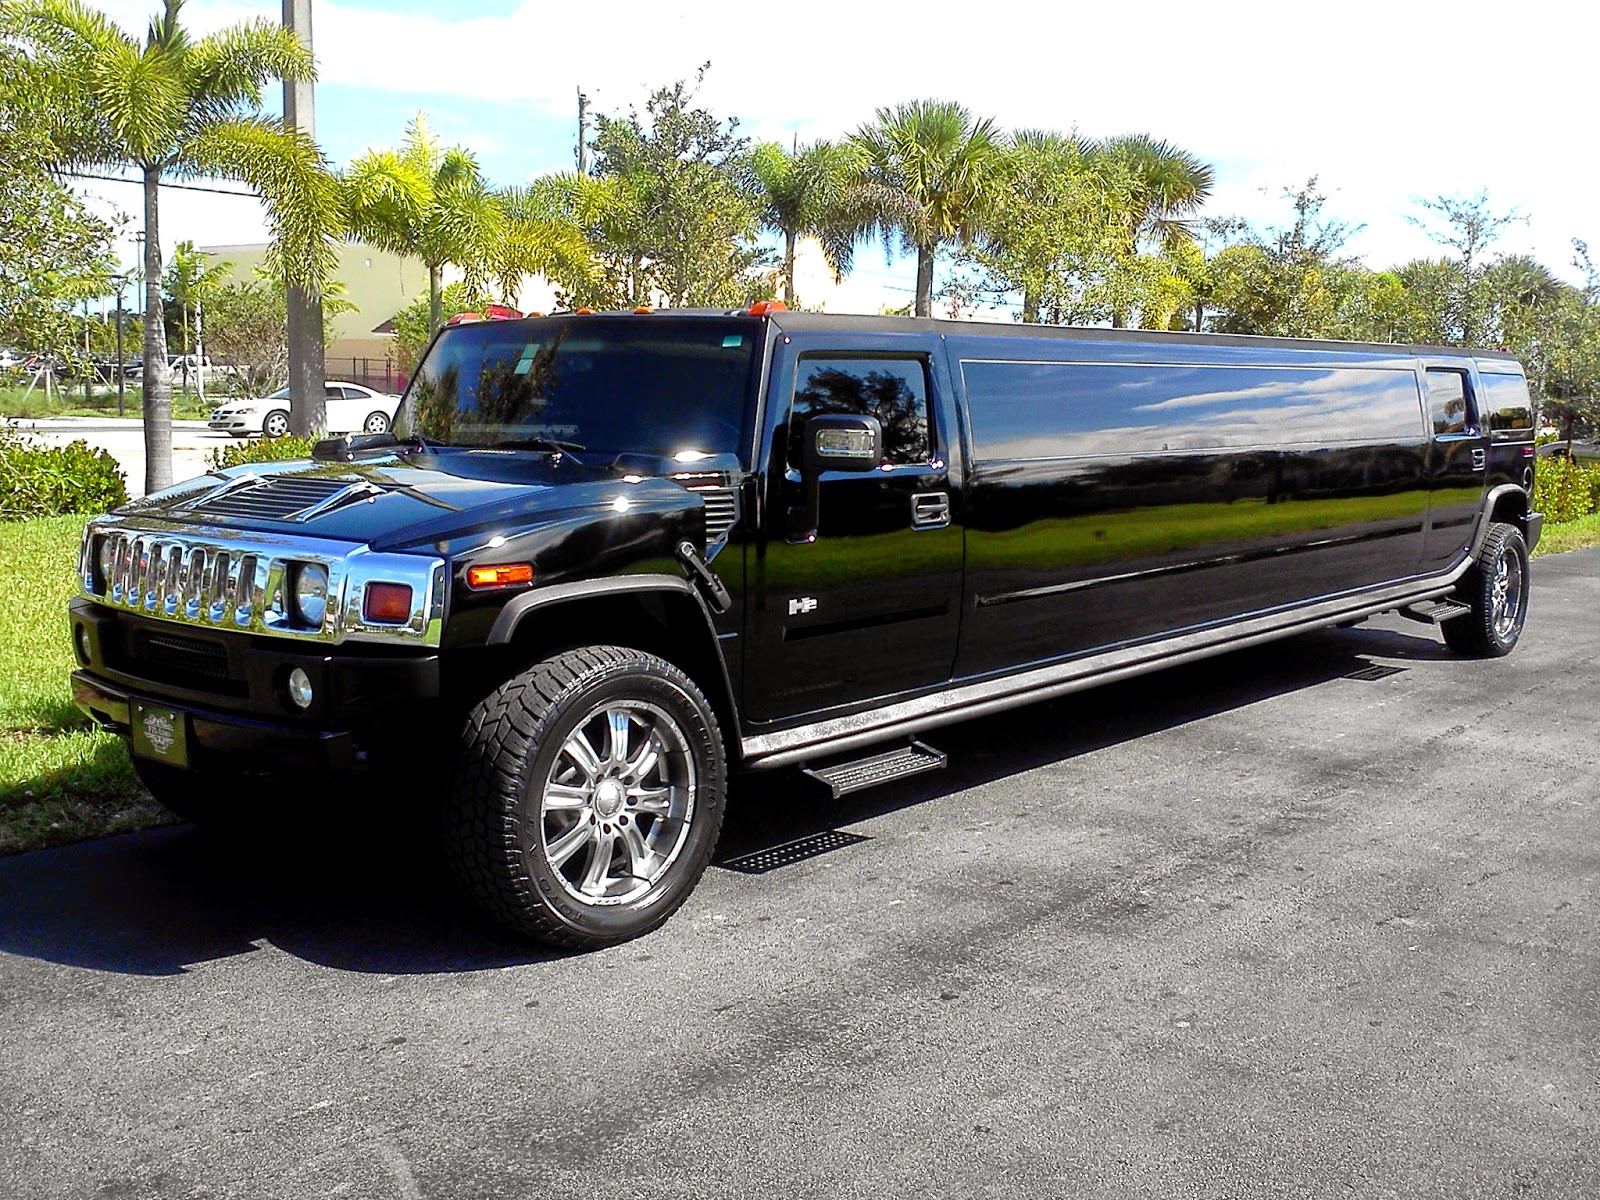 Luxury Limousines and Party Buses Picking The Perfect South